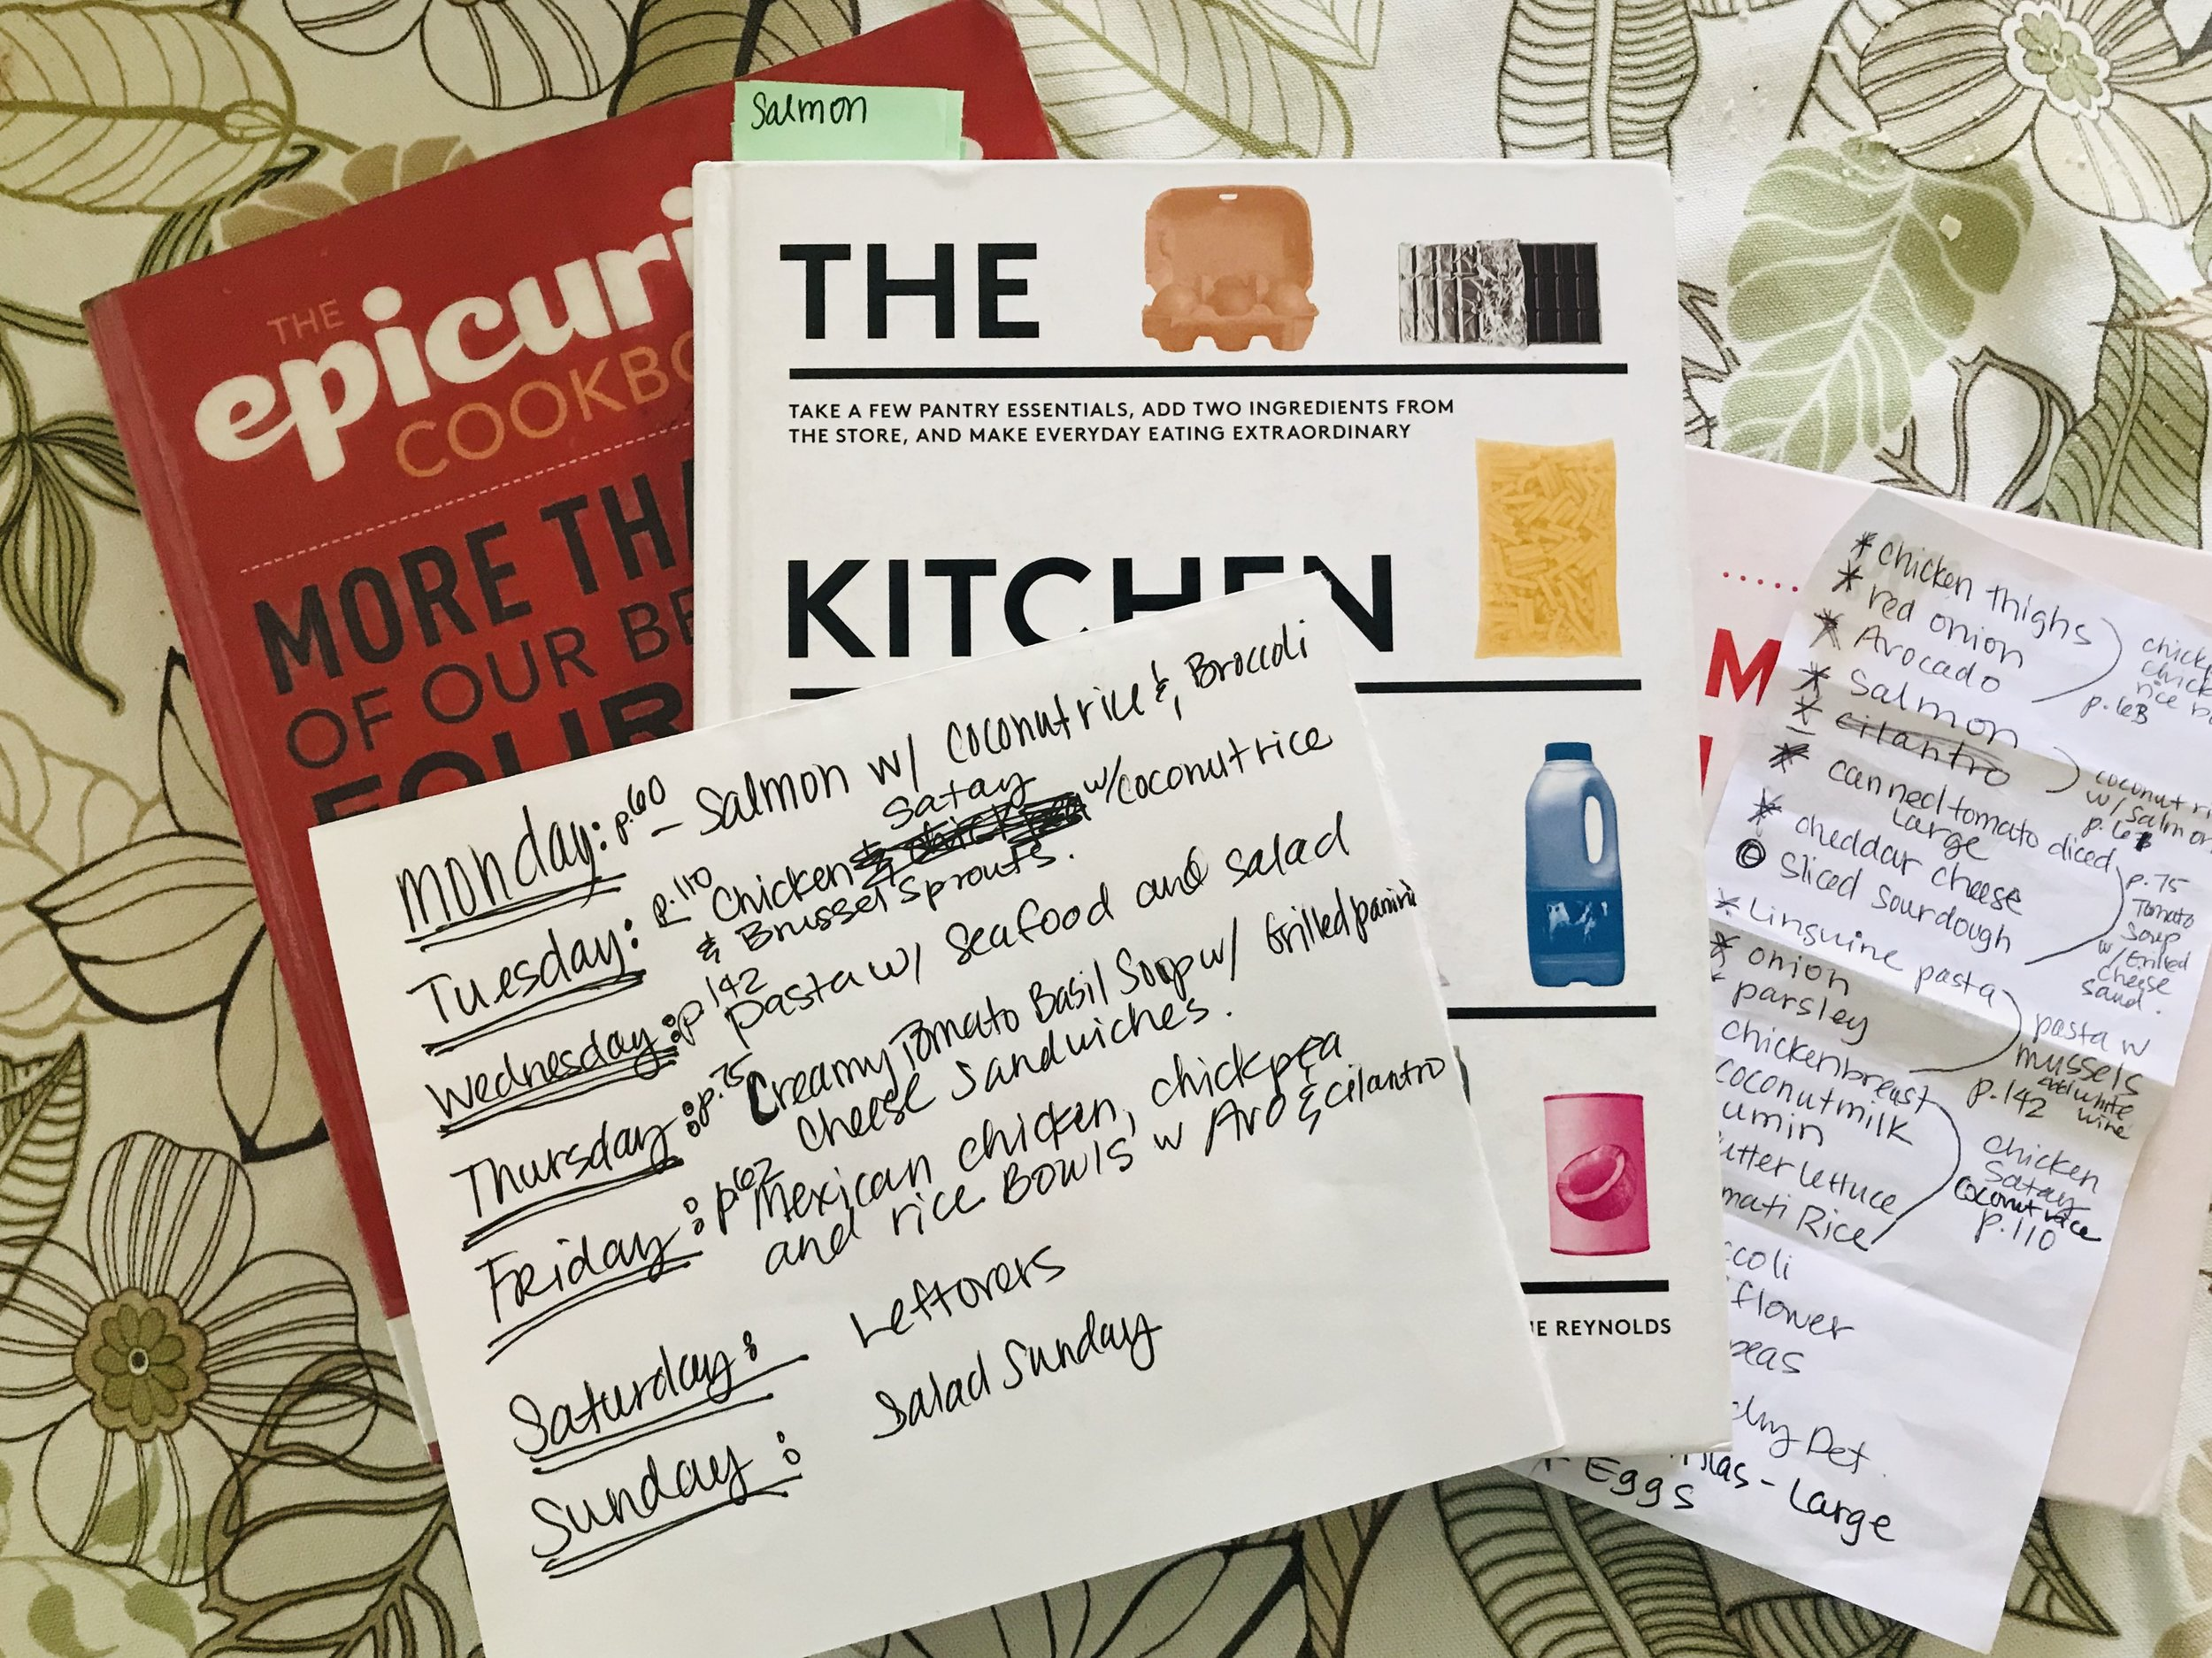 Menu Planning for the week with The Kitchen Shelf cookbook